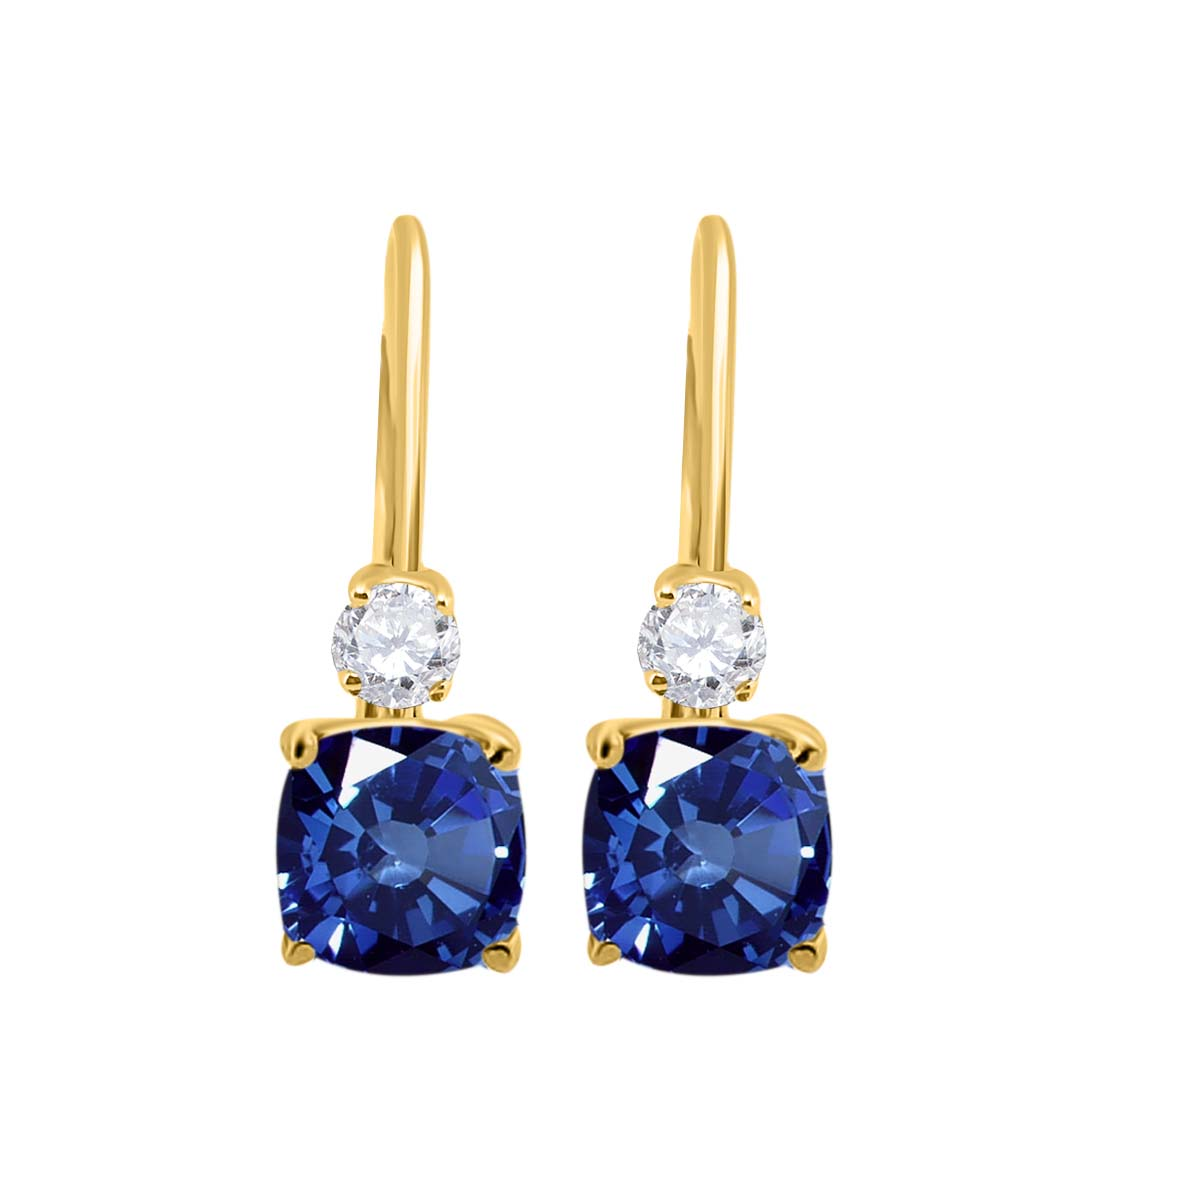 2.65 Carat. Cushion Cut Gemstone And Diamond Leverback Earrings sets for girls or Women Sapphire 14K Yellow Gold 4 Prong-Setting Cushion adultsthis is the lovely gift for anniversary